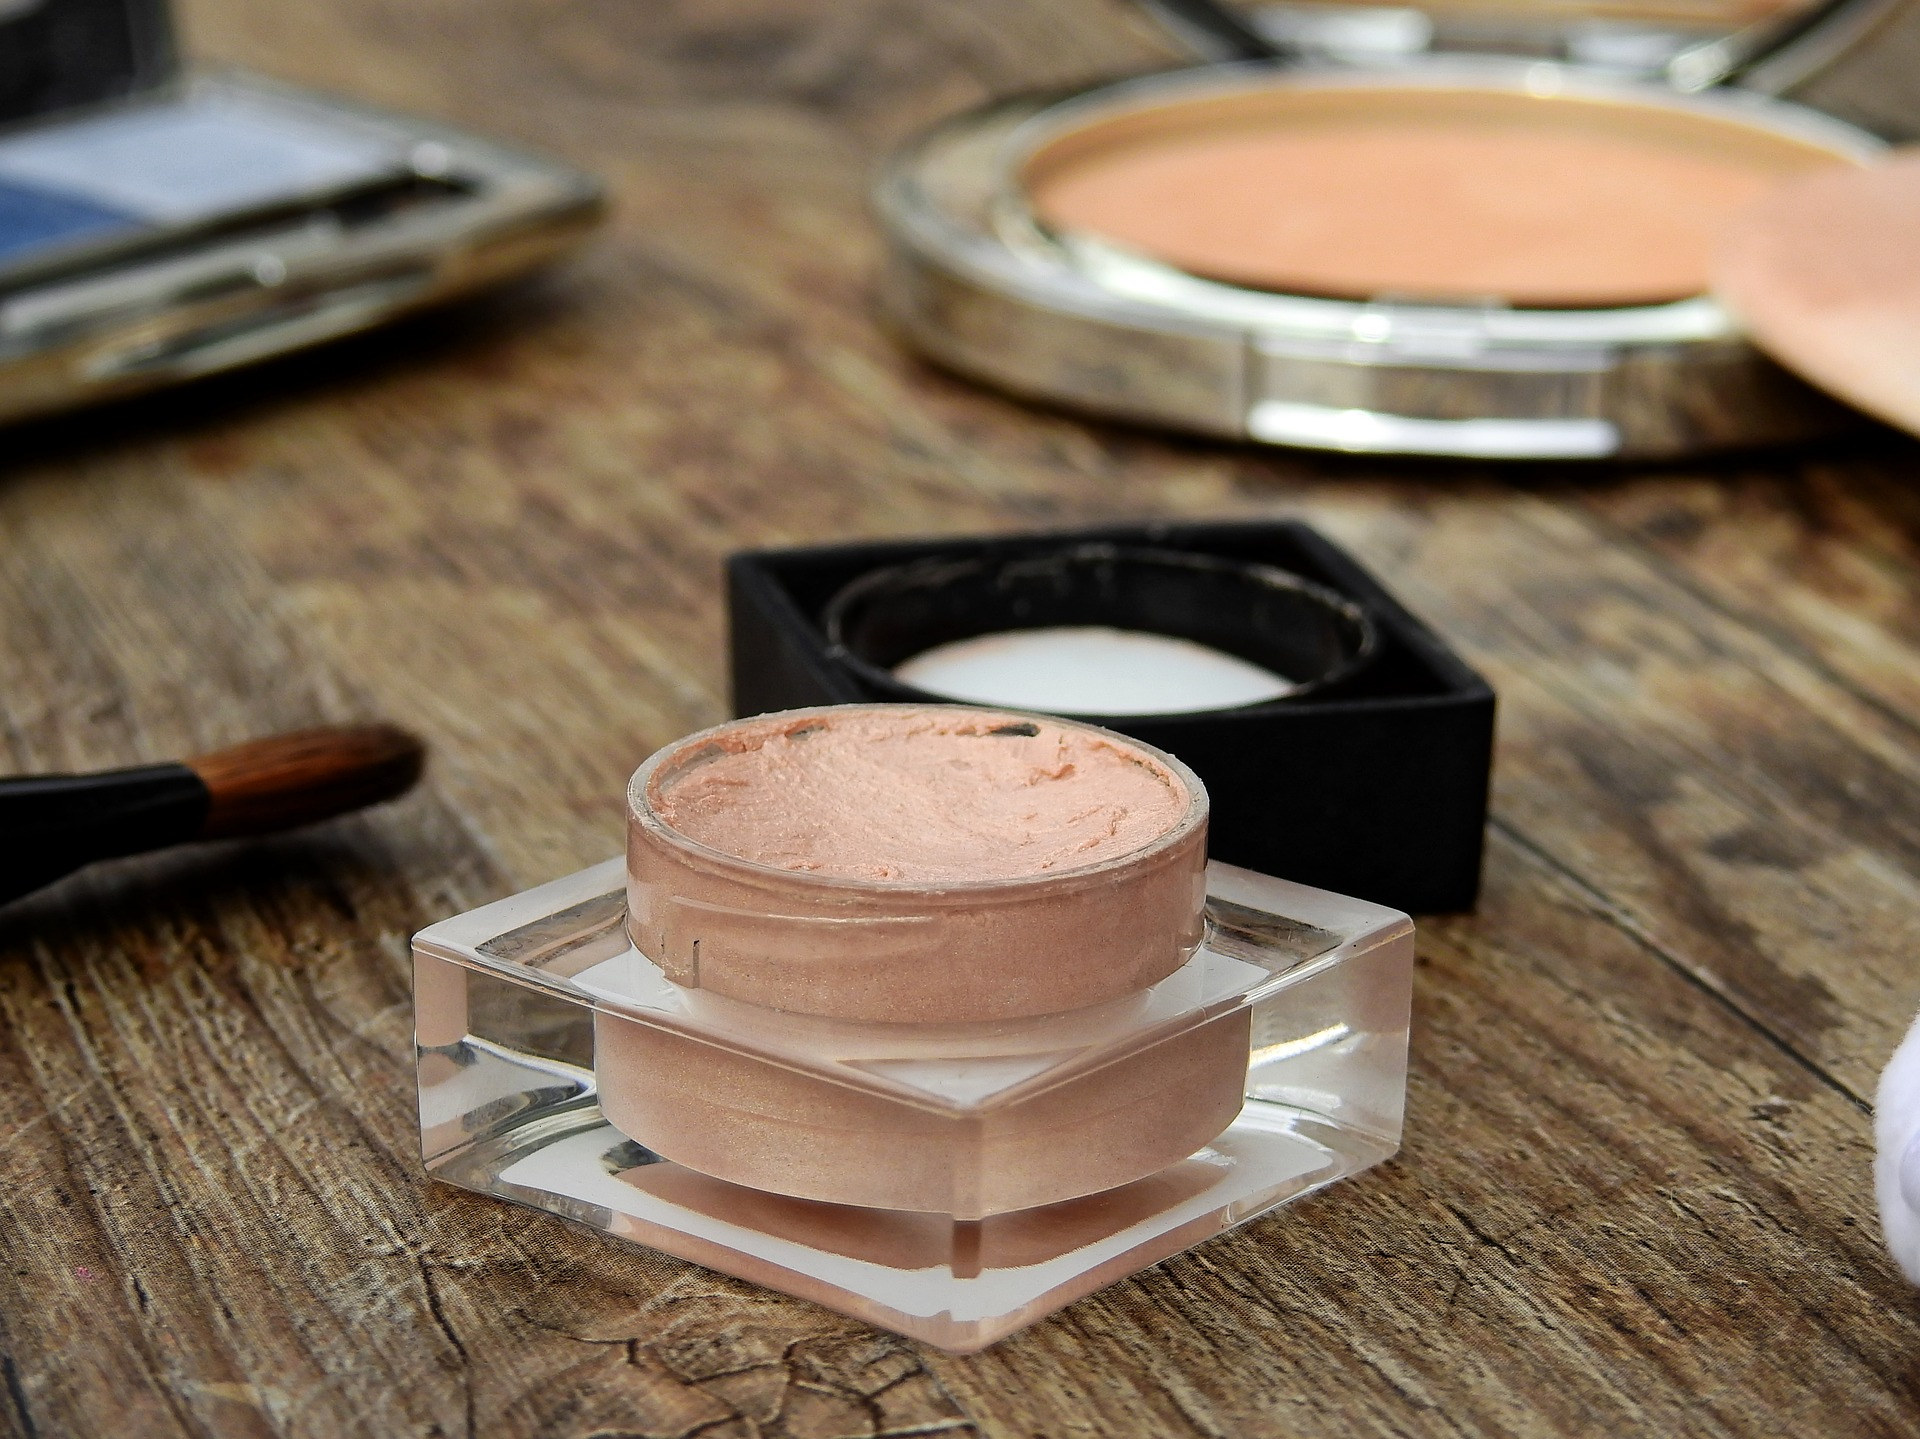 Creme-Make-up mit Kontaktlinsen